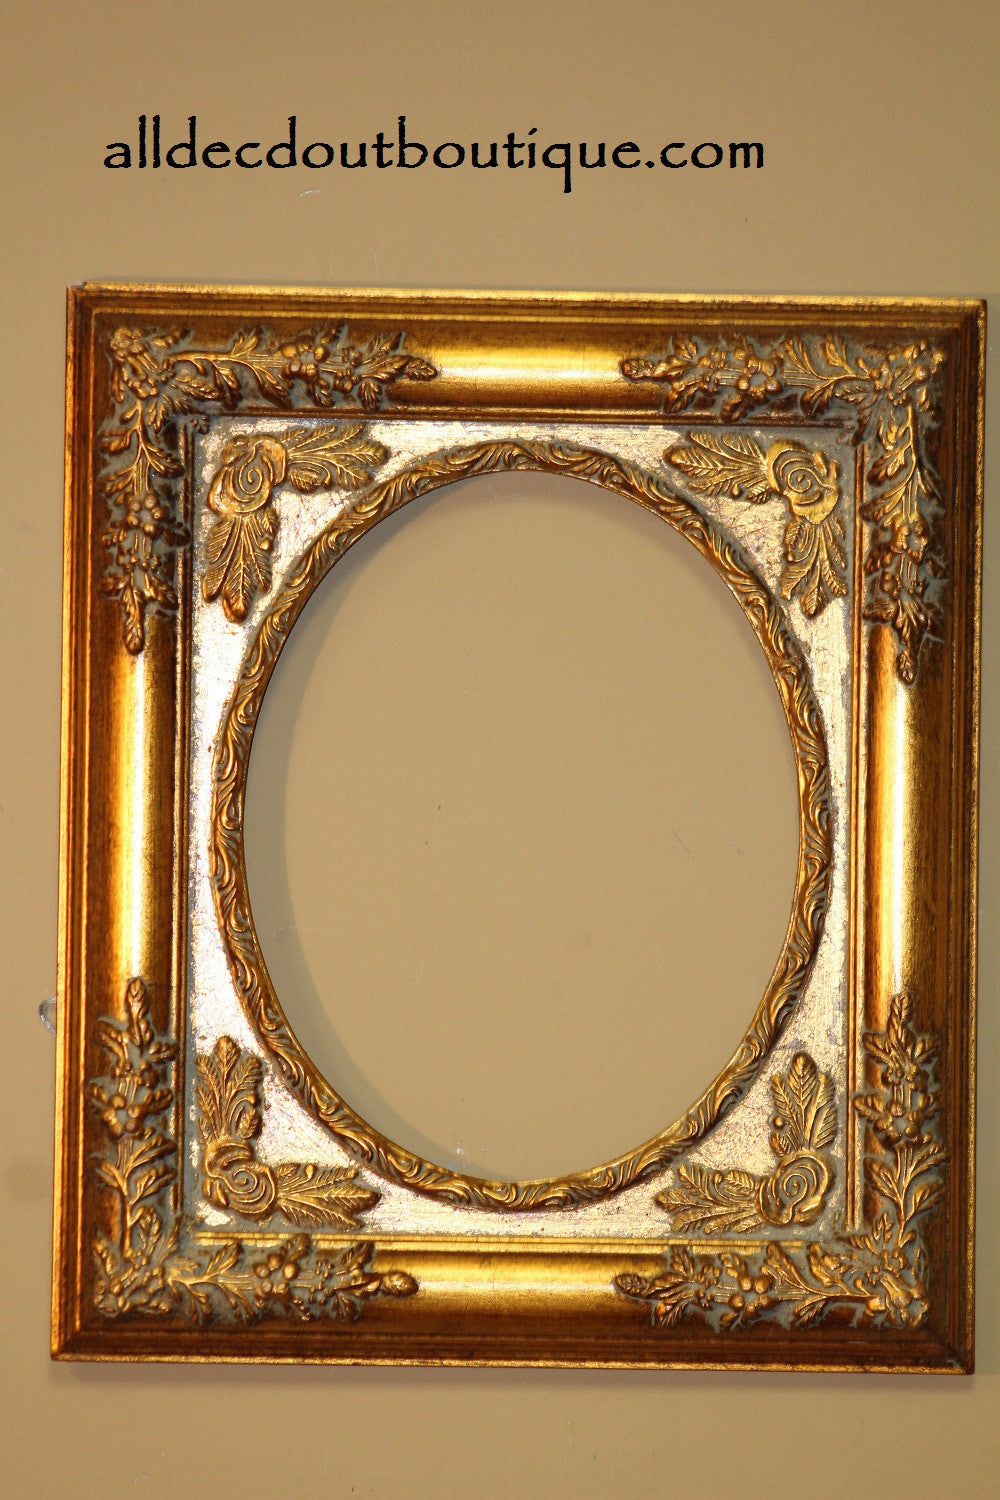 Decorative Picture Frame| Wall Hanging 8